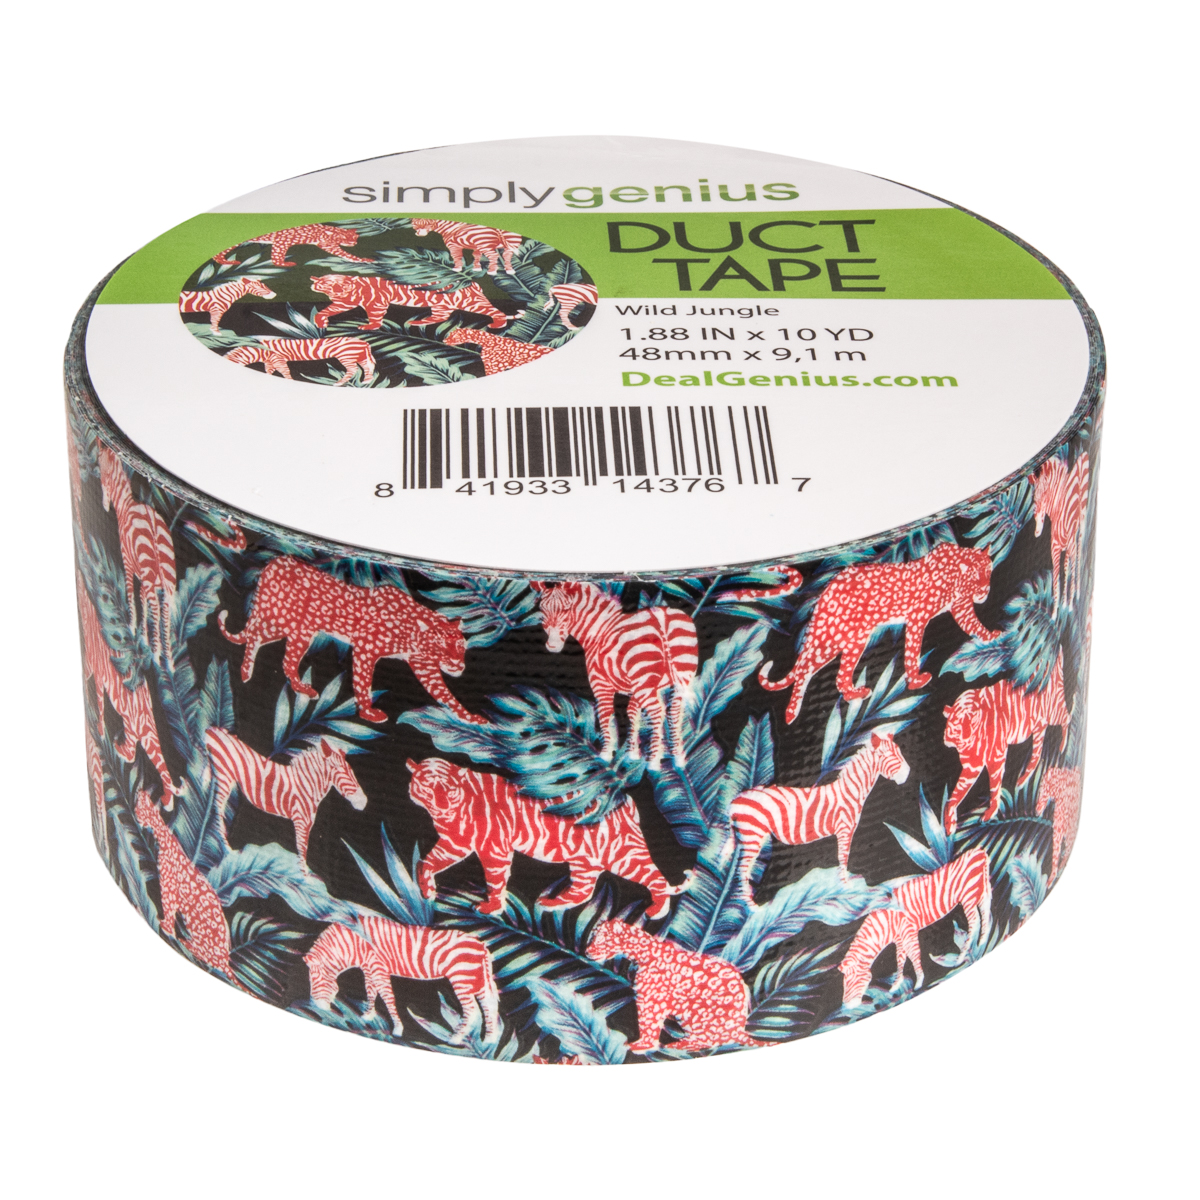 Simply-Genius-Duct-Tape-Roll-Colors-Patterns-Craft-Supplies-Colored-amp-Patterned thumbnail 218